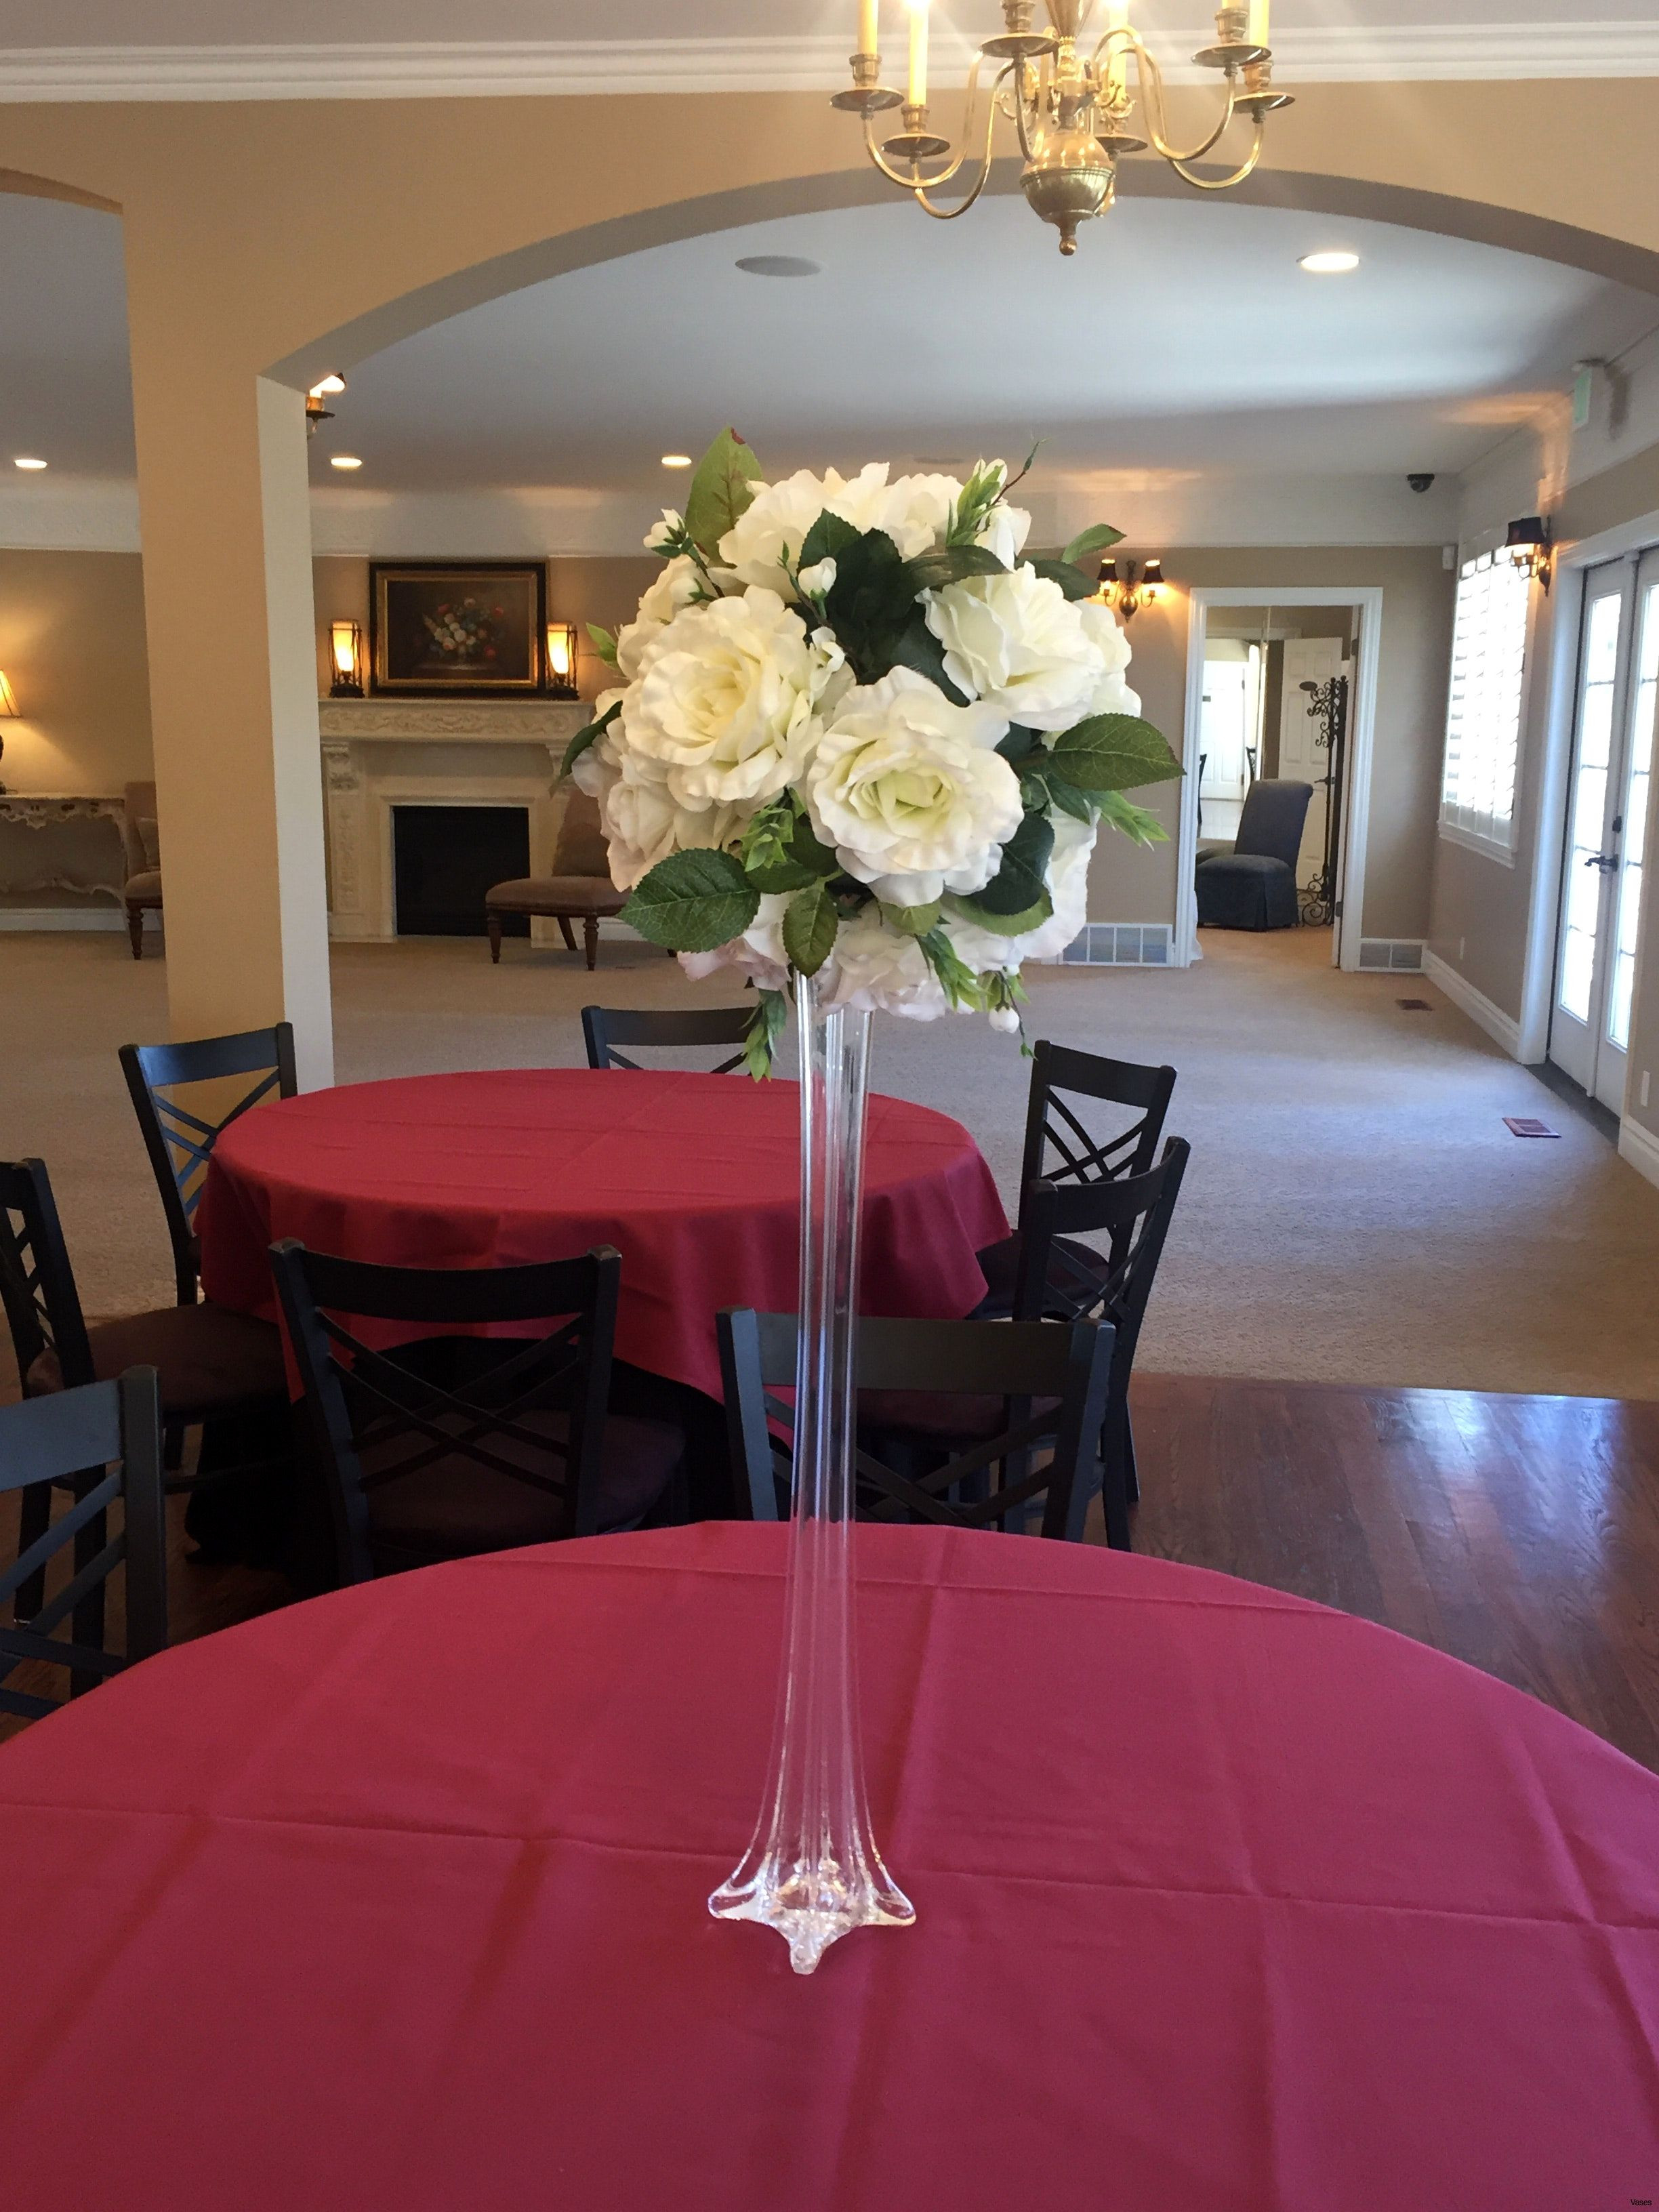 17 Nice Huge Vases for Sale